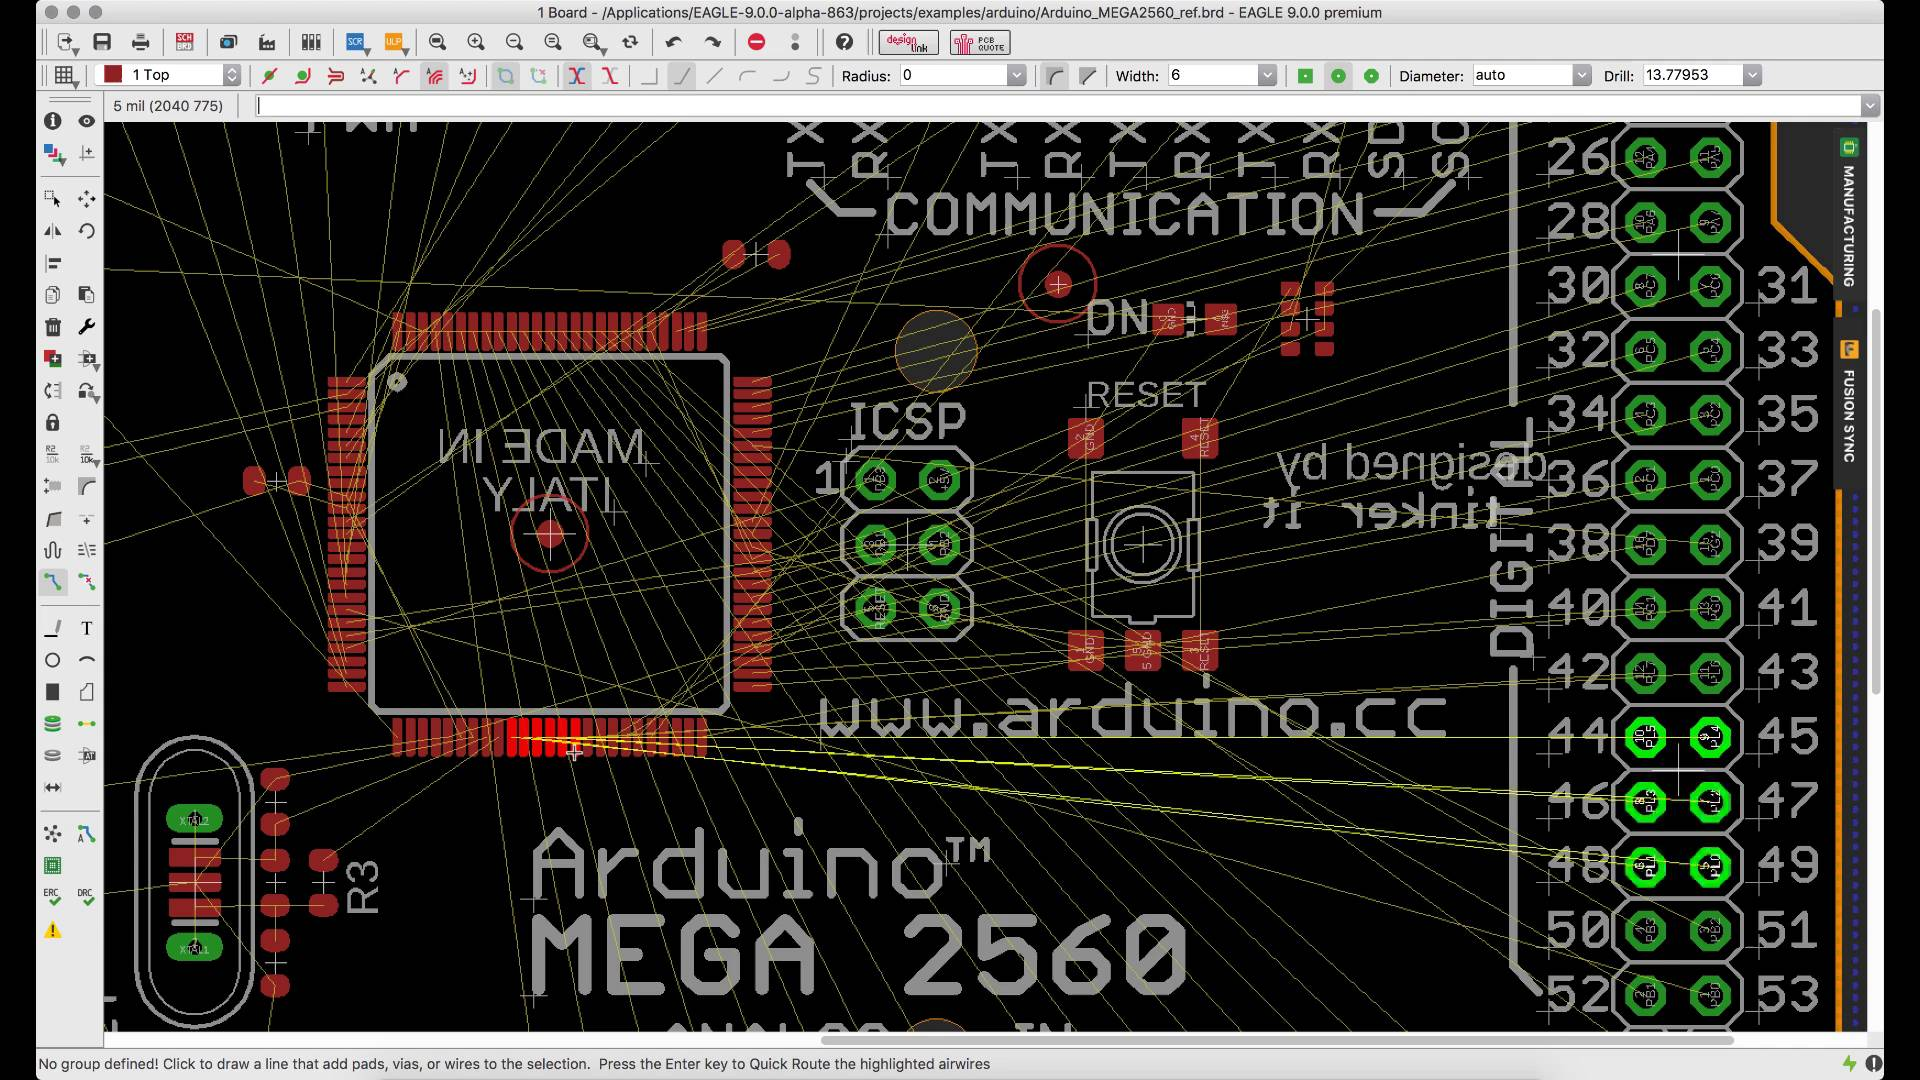 medium resolution of eagle pcb design software autodesk the circuit diagram and board are designed in eaglecad english page